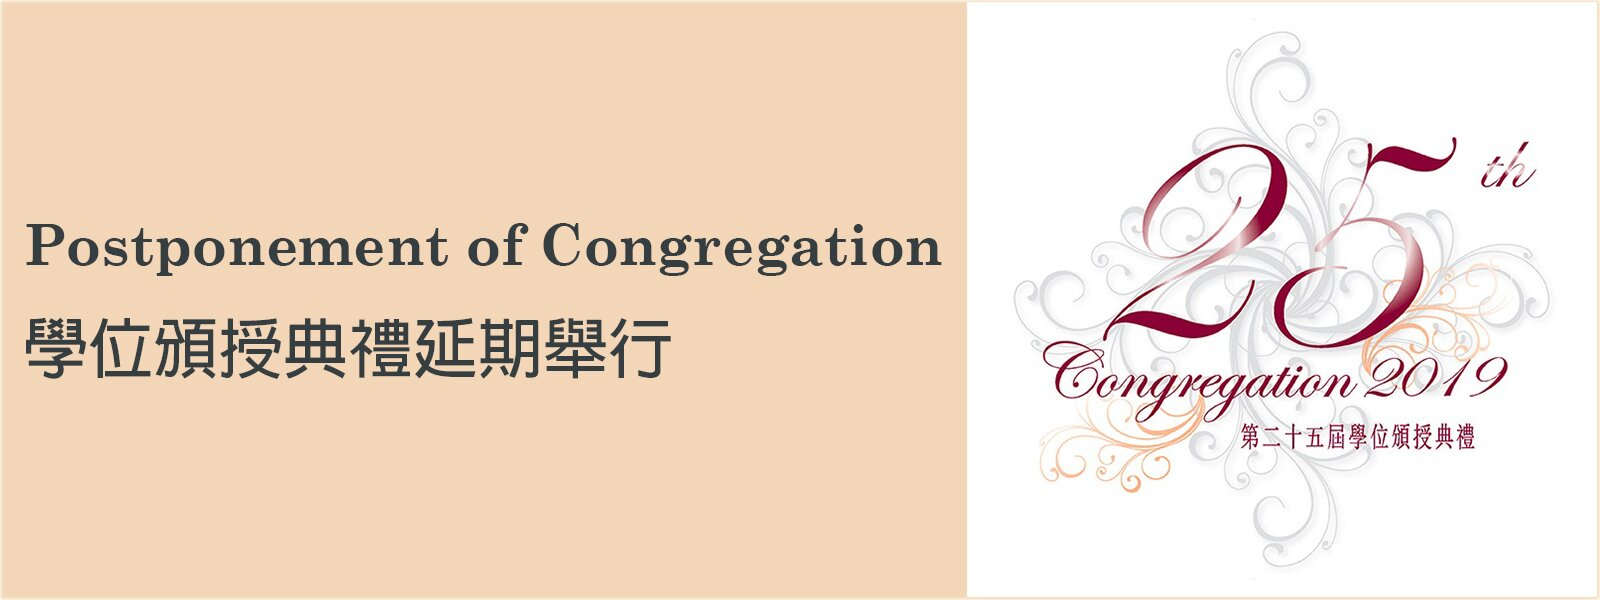 Postponement of Congregation